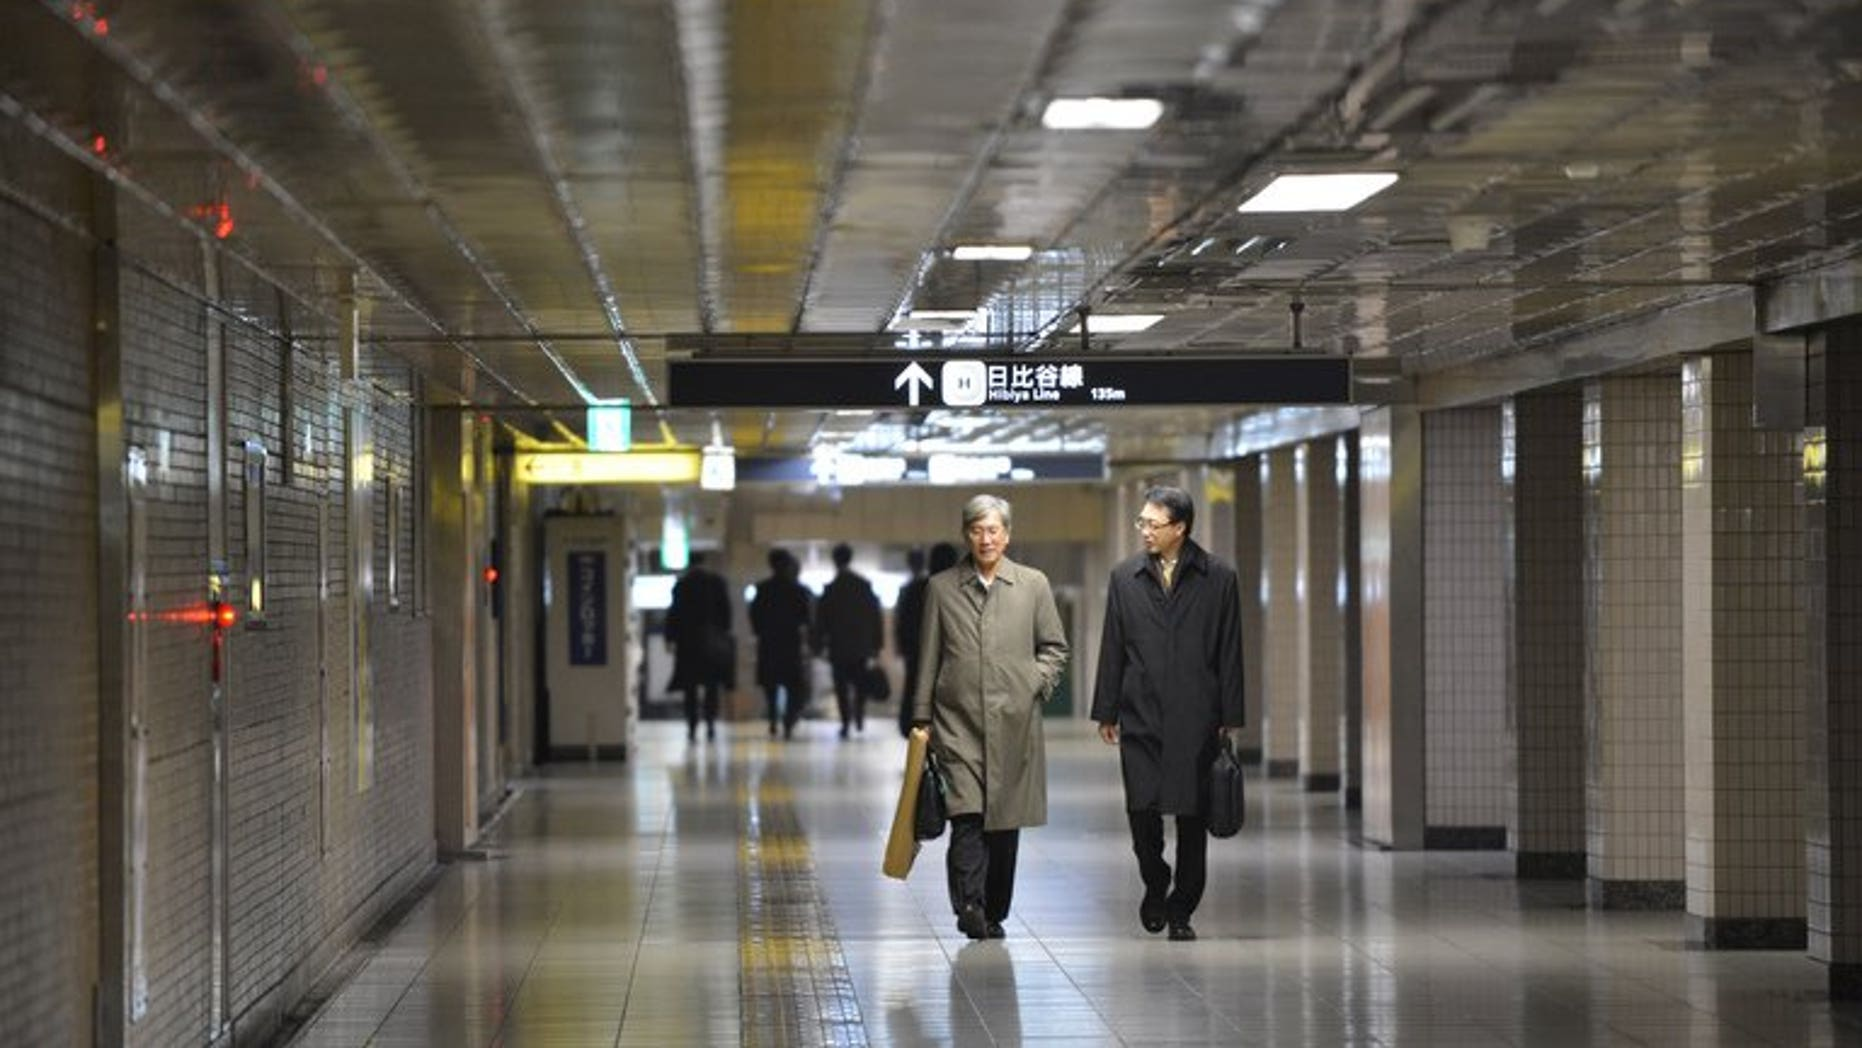 Businessmen walk on a concourse at a subway terminal in downtown Tokyo on December 28, 2012. Japan's army of dark-suited salarymen are scraping by on a monthly allowance from their wives that is less than half what they got in the 1980s bubble years, a survey has shown.